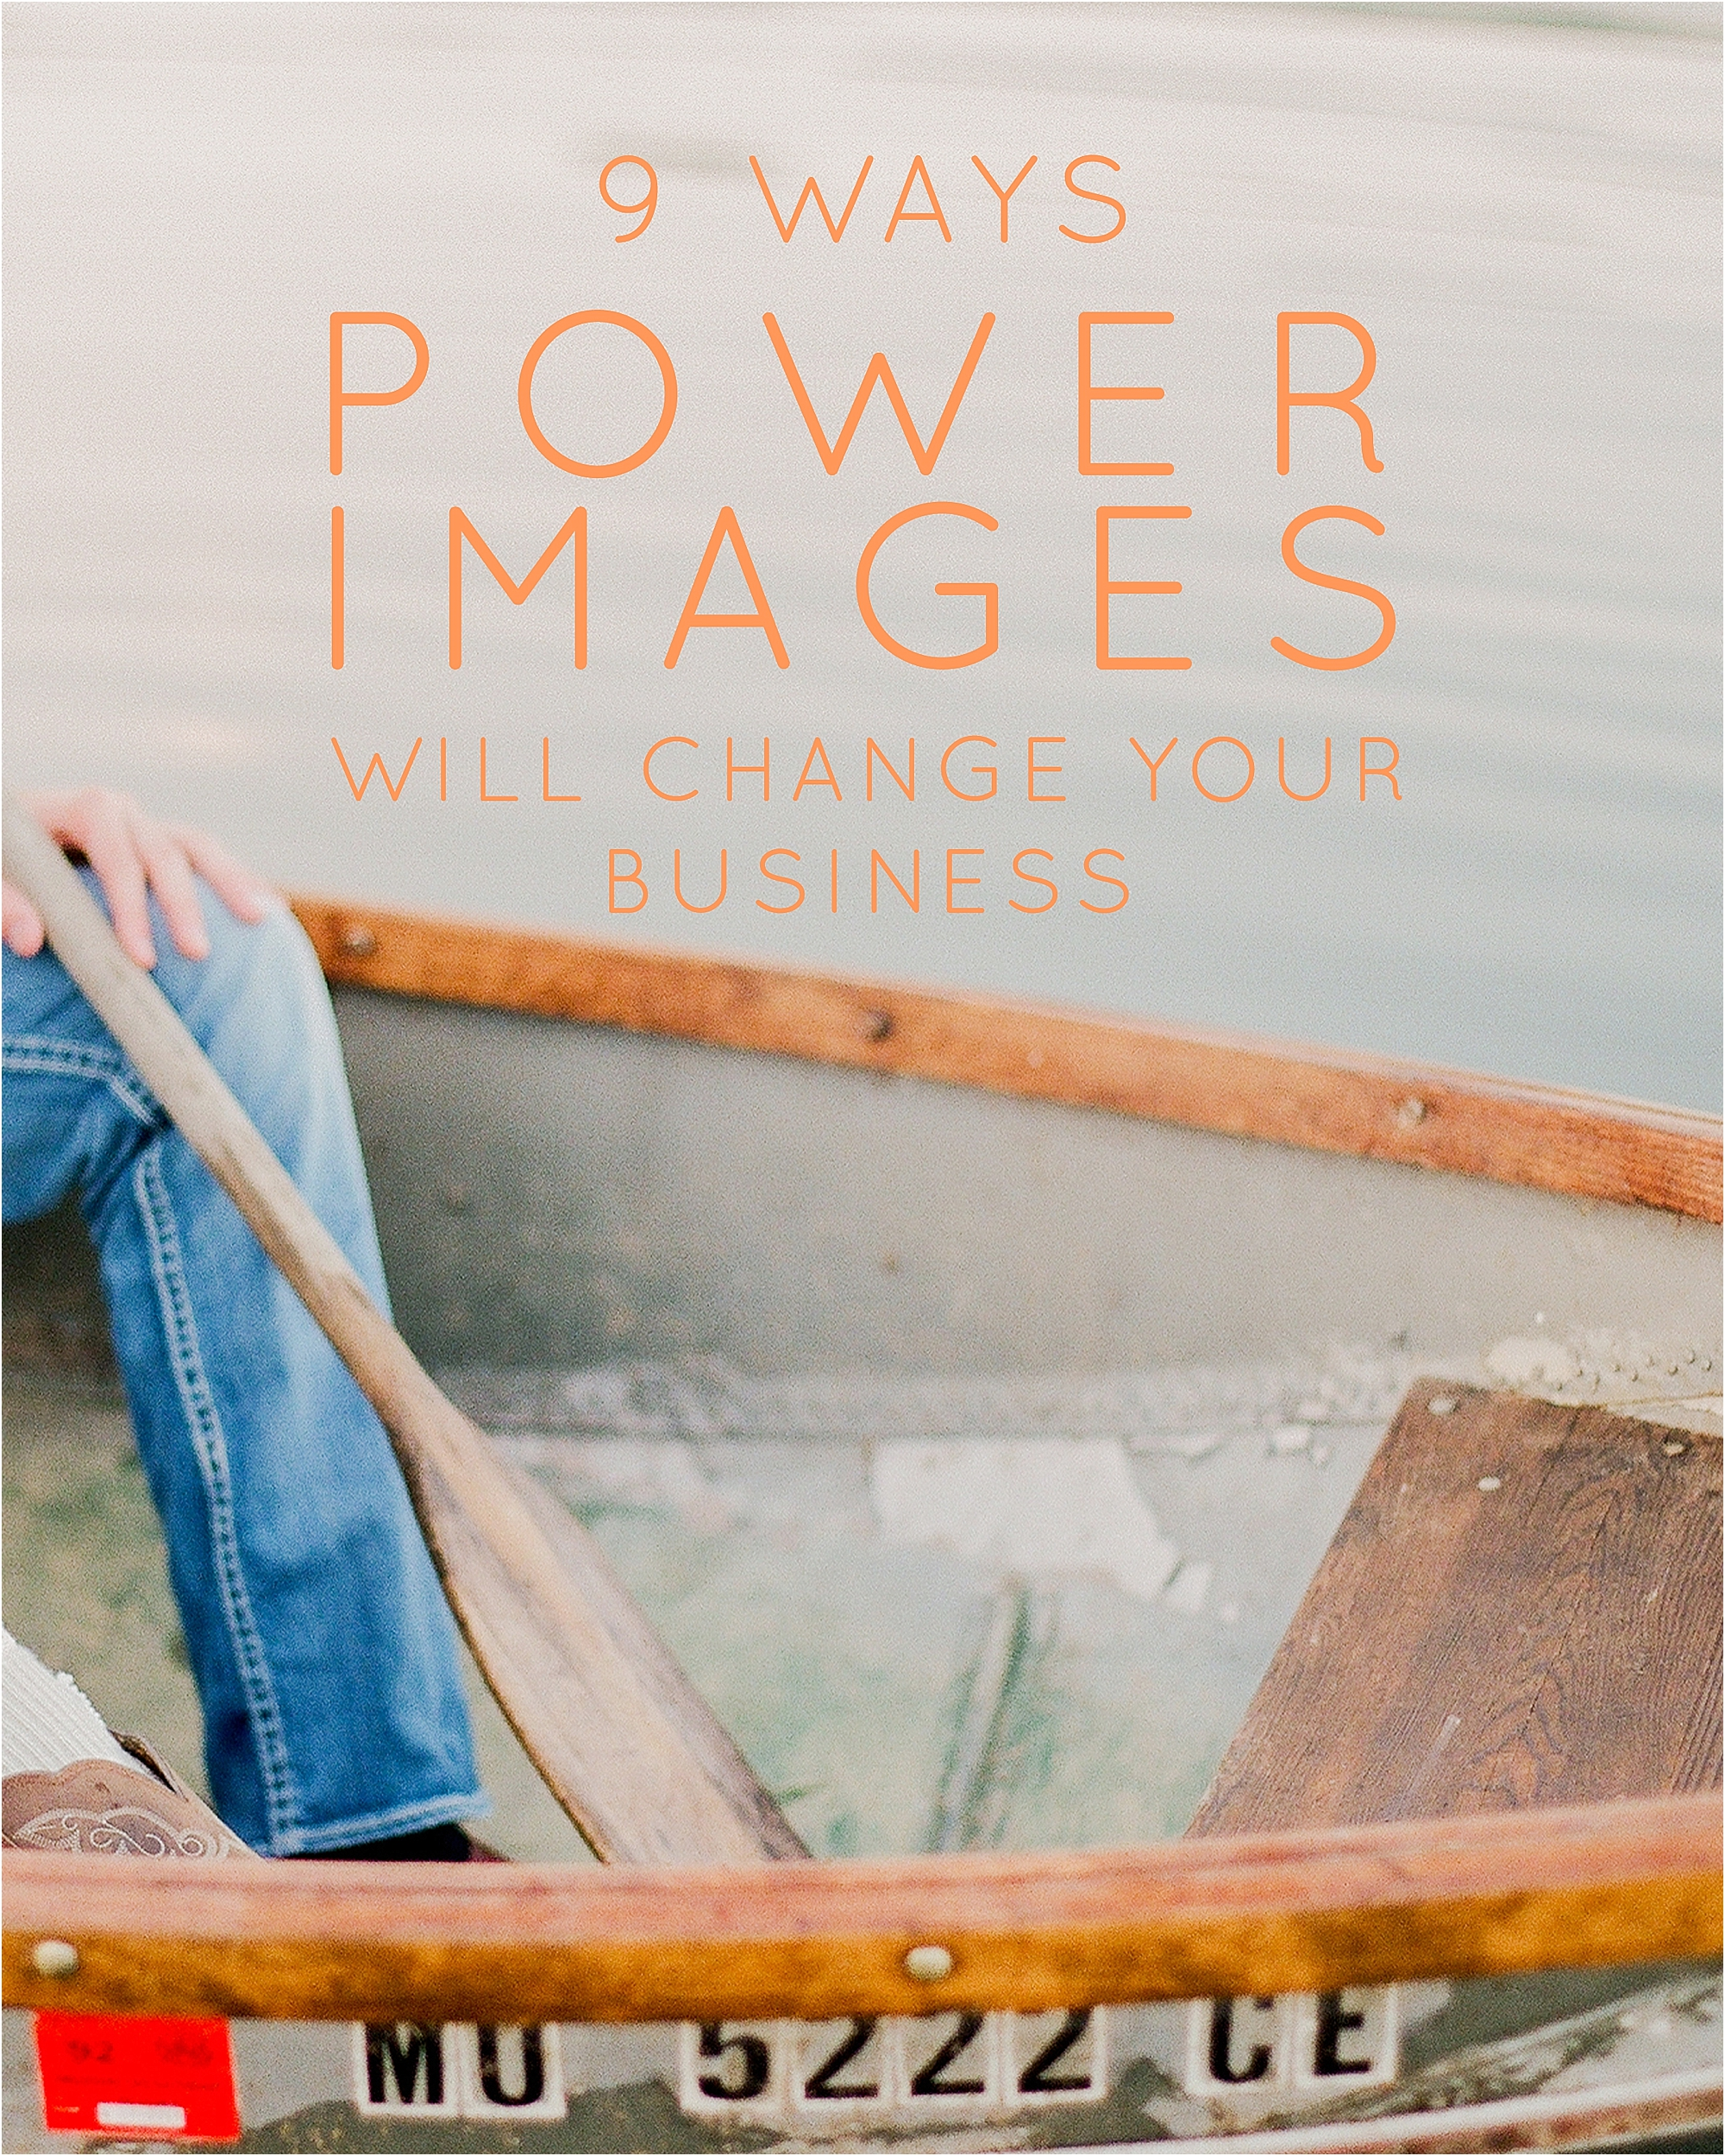 9 Ways Power Images will Change Your Business - The Jordan Brittley Blog